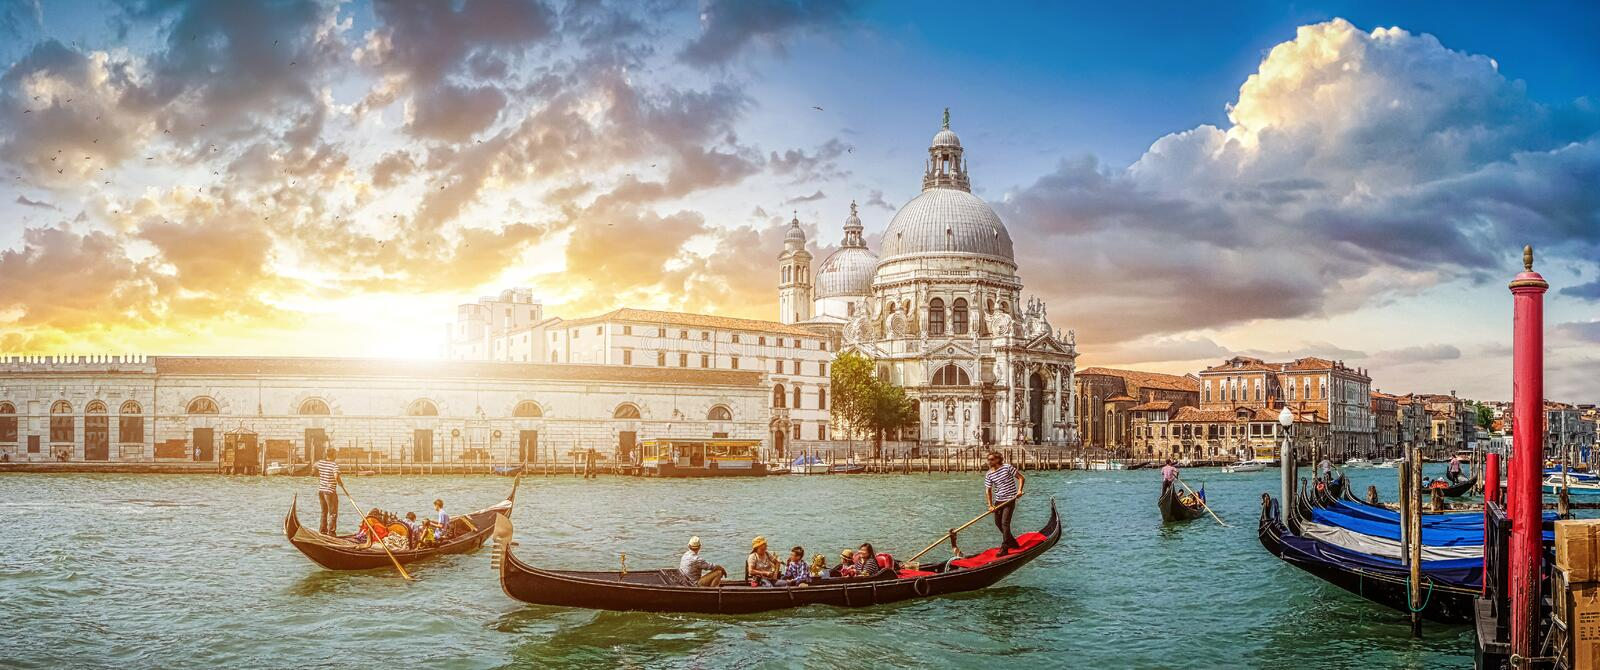 Romantic Venice Gondola scene on Canal Grande at sunset, Italy stock photography